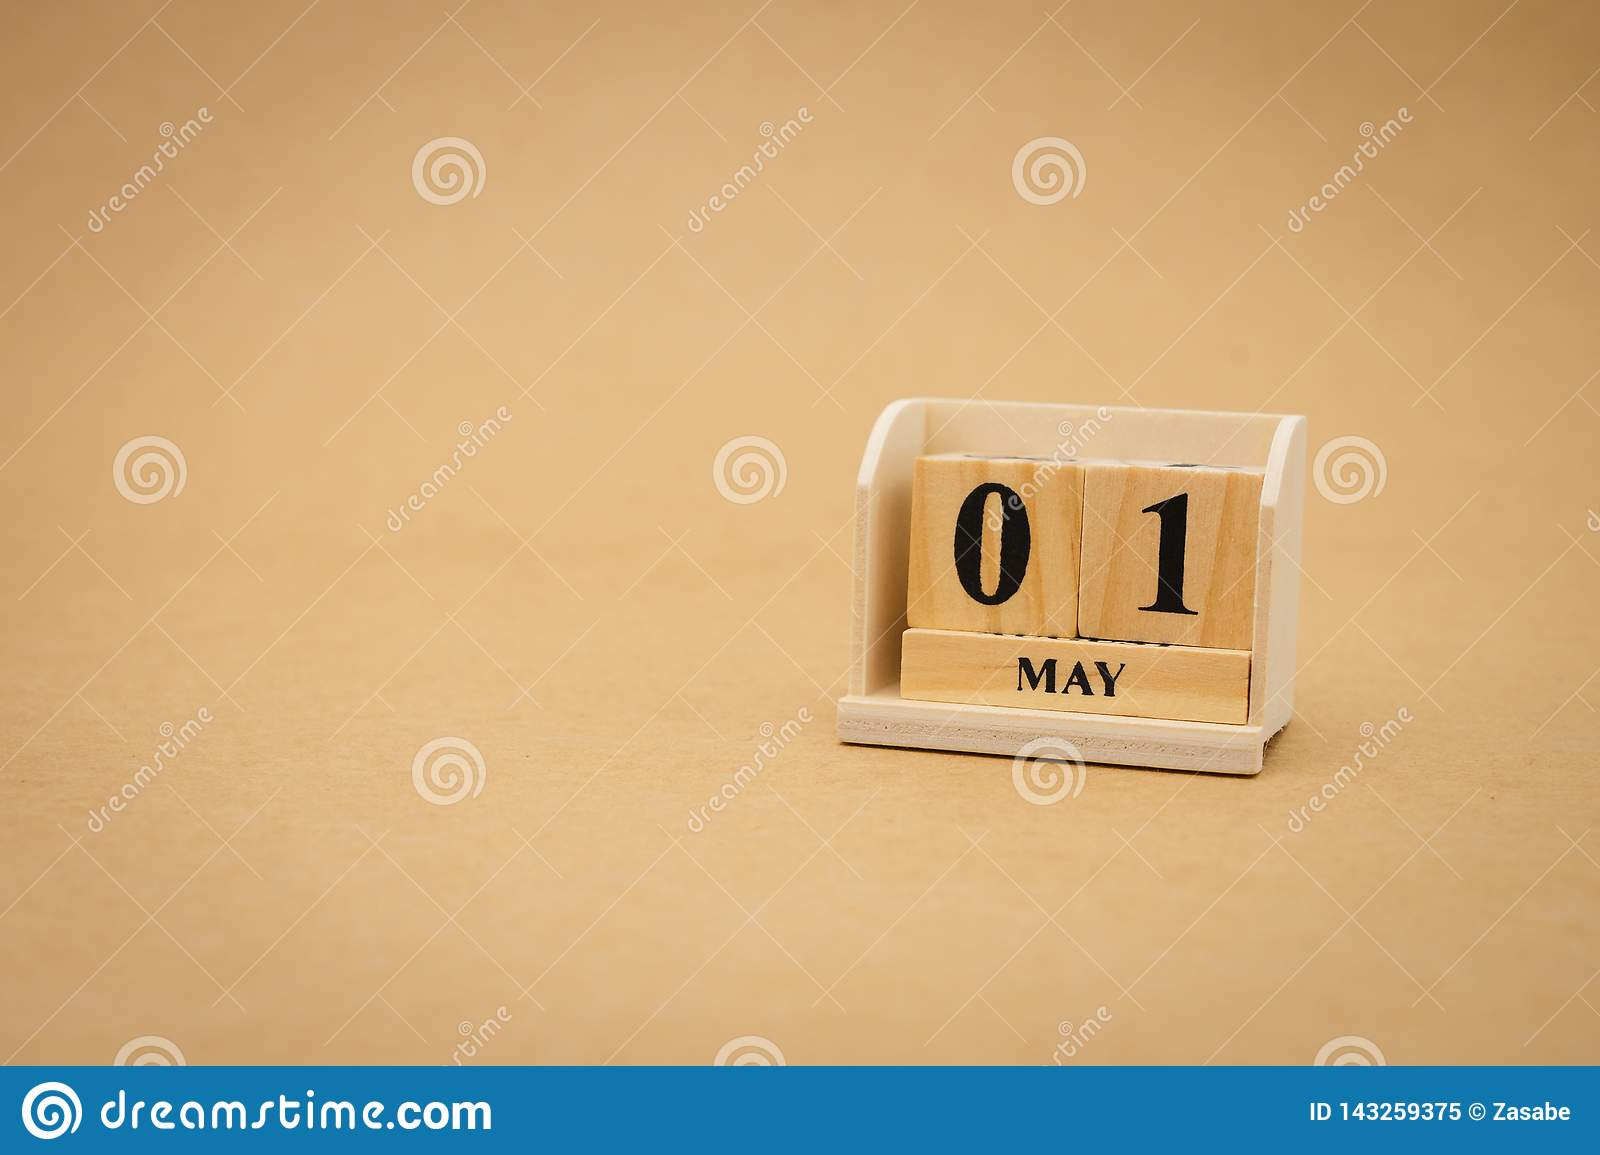 May 1st wooden calendar on vintage wood abstract background. International Labor Day Is a holiday for workers